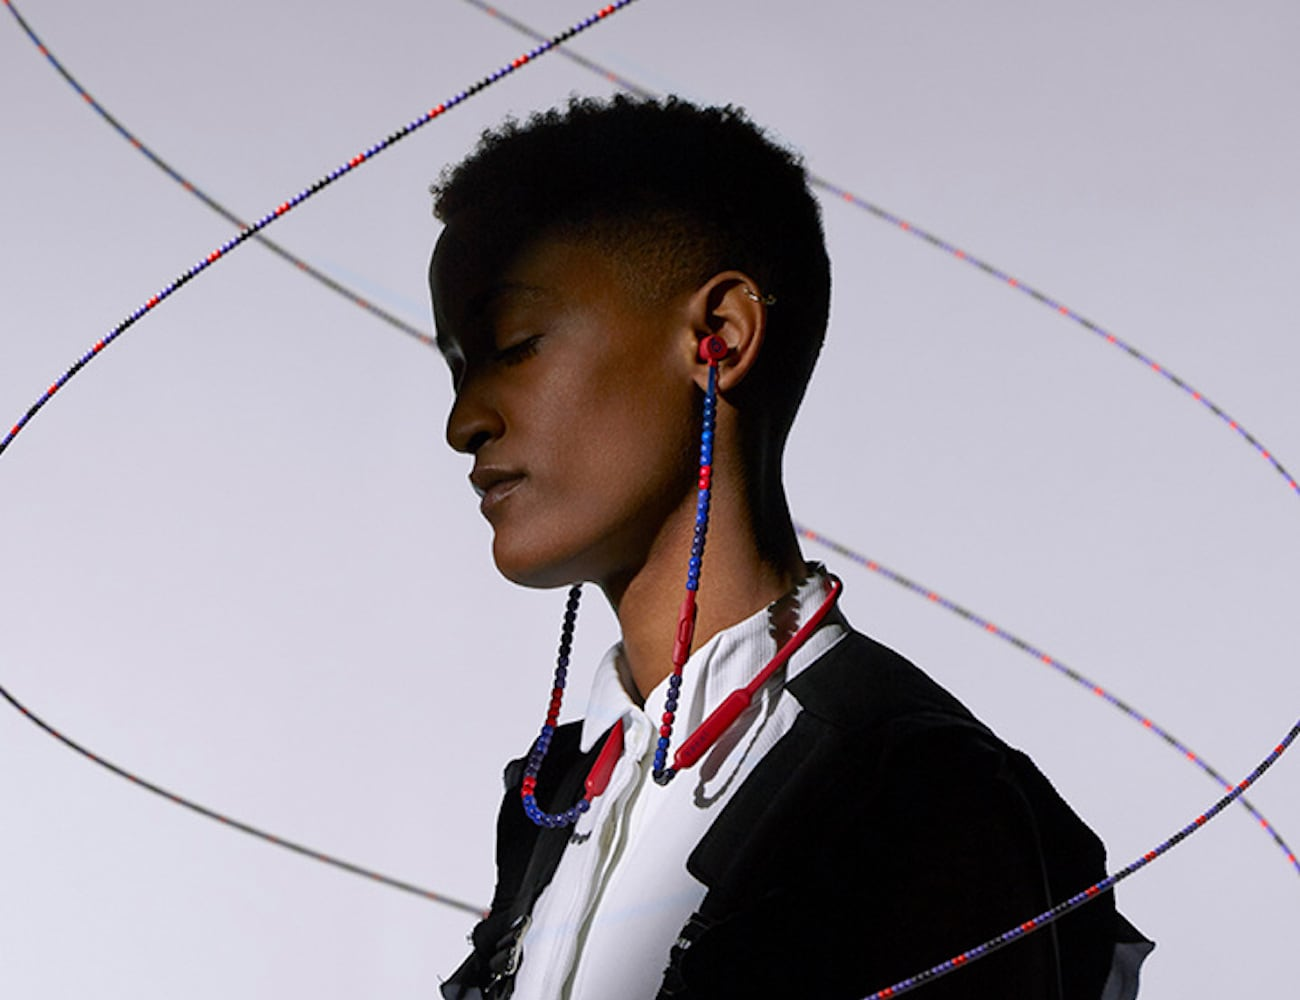 BeatsX sacai Special Edition Earphones let you customize your experience